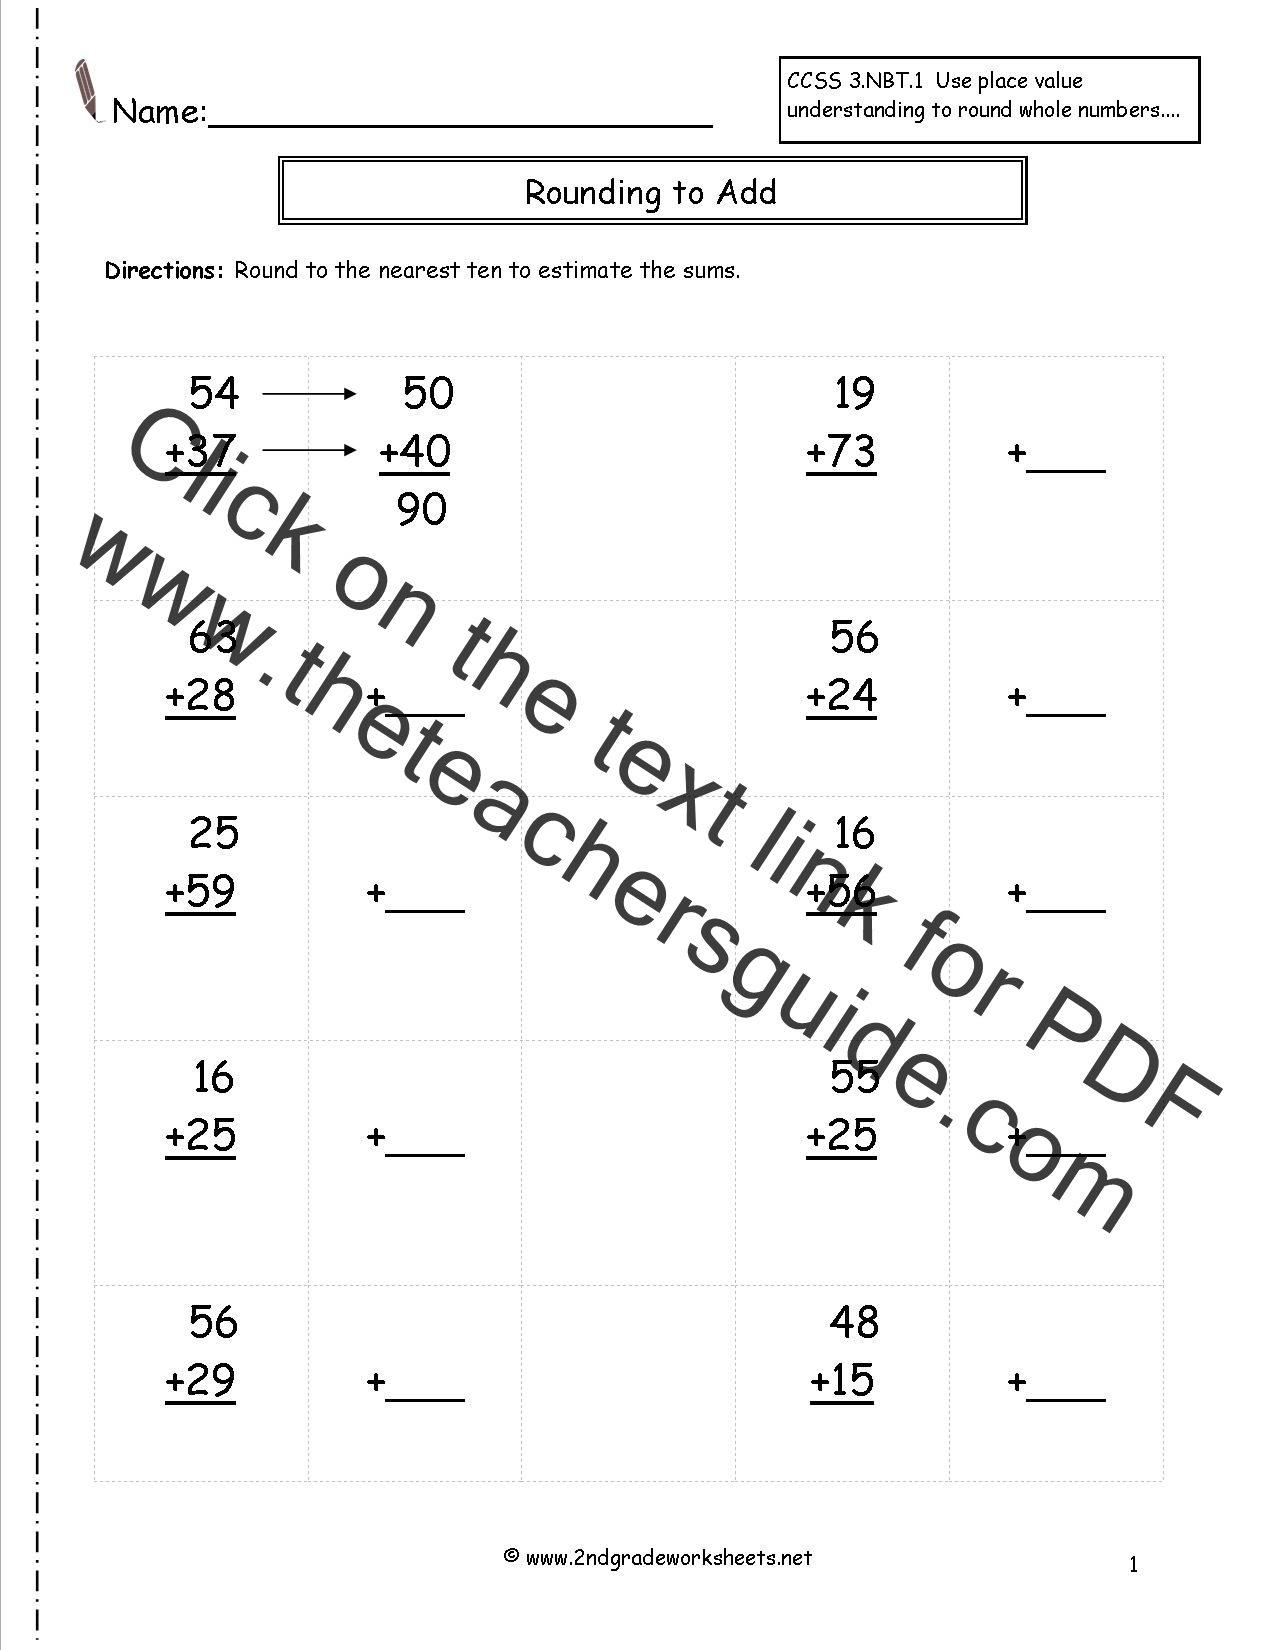 worksheet Round To The Nearest Tenth Worksheet rounding whole numbers worksheets to estimate the sum worksheet